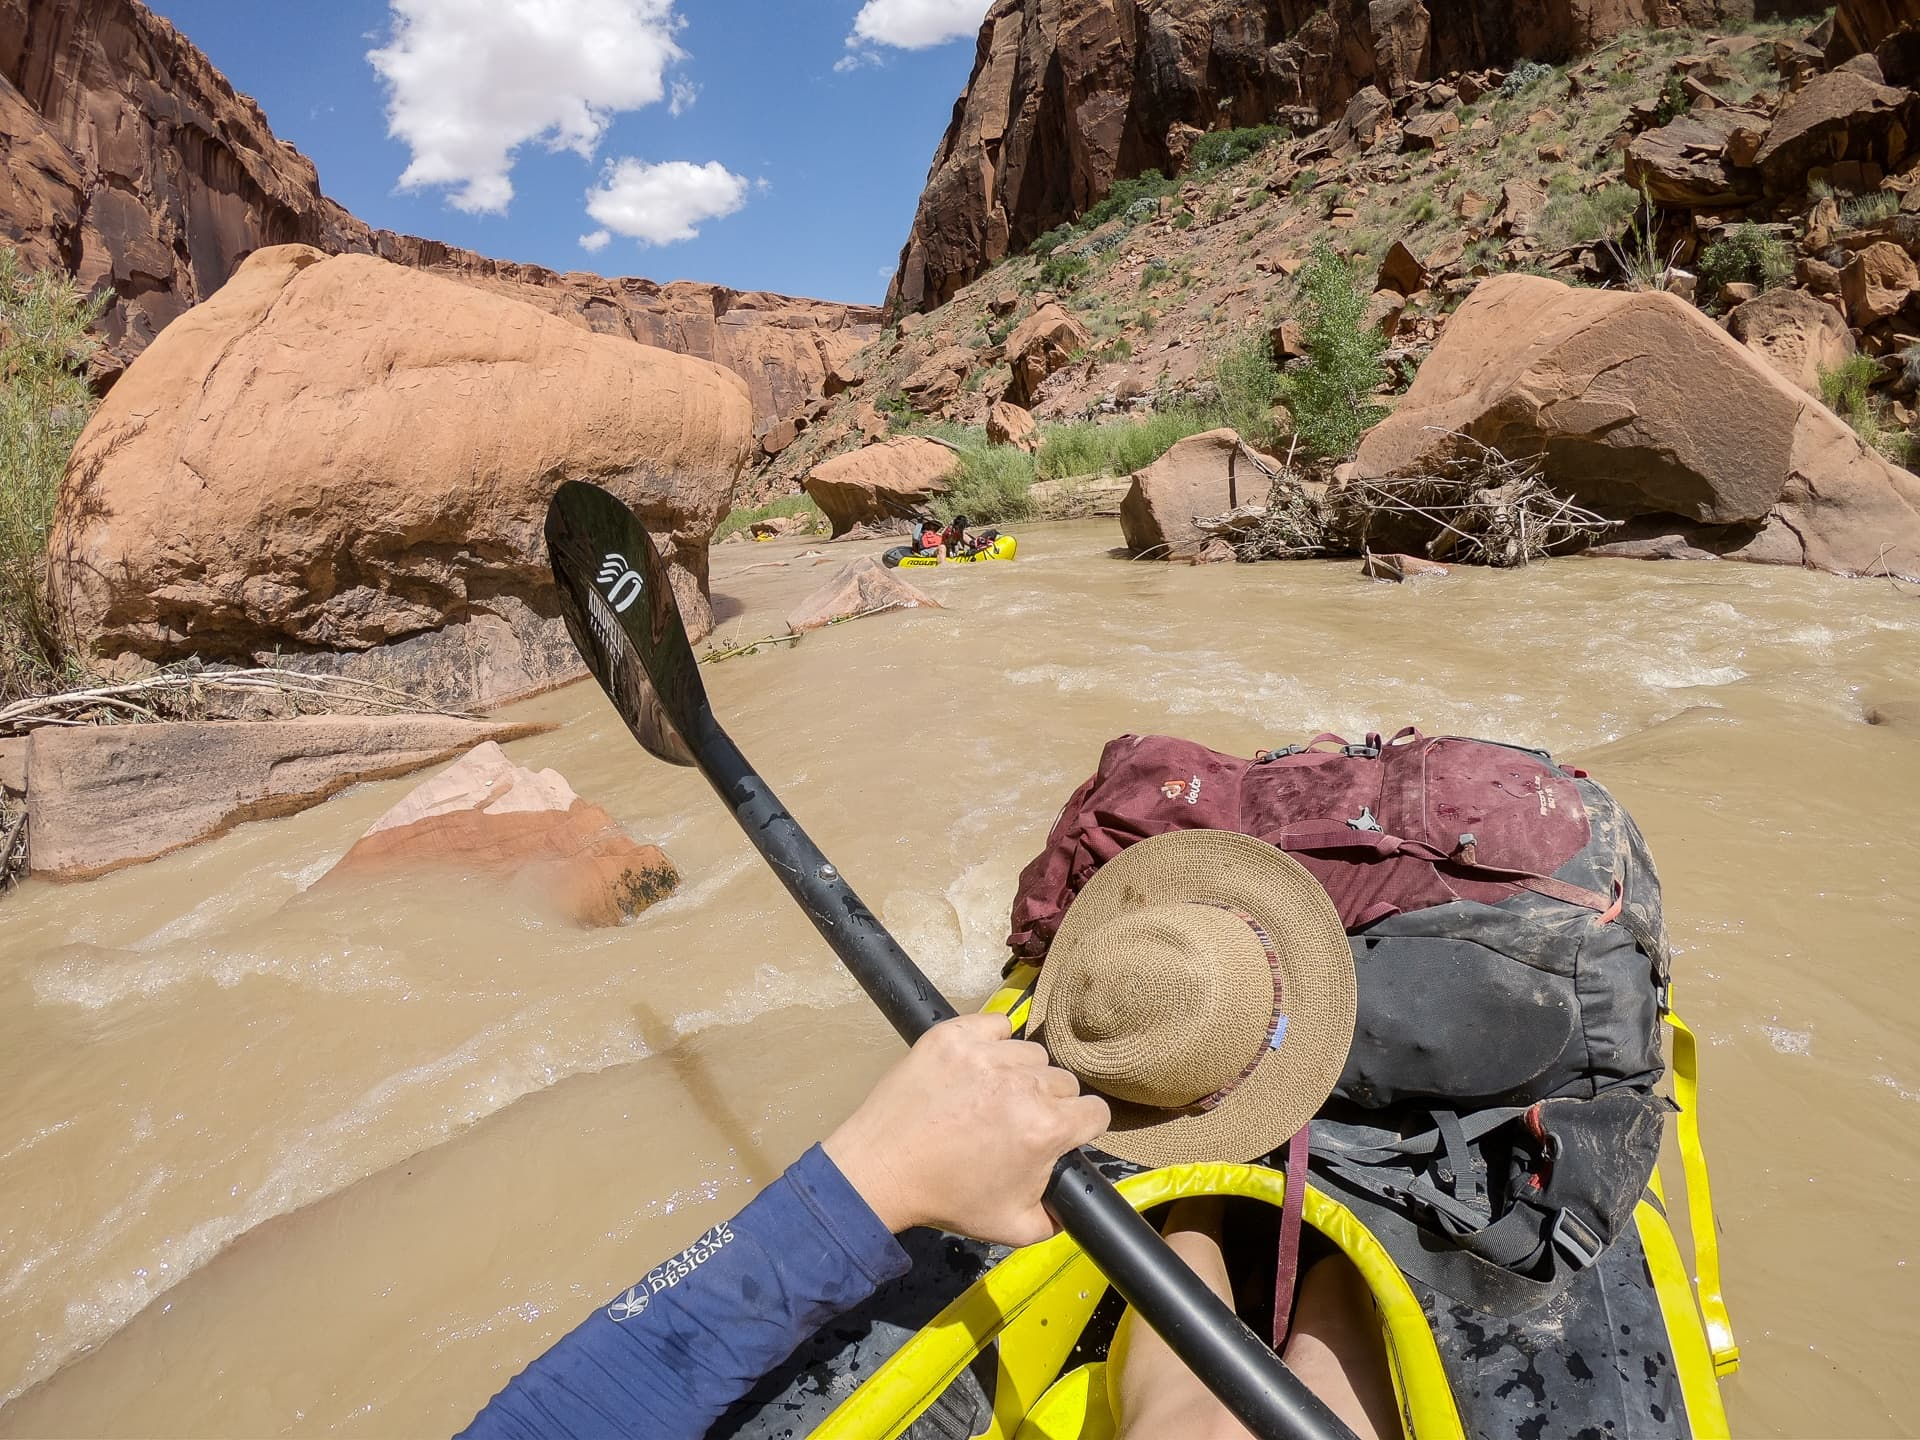 Packrafting the Escalante River in Utah requires serious planning. Get prepared for this multiday rafting & backpacking trip with these 12 essential tips.